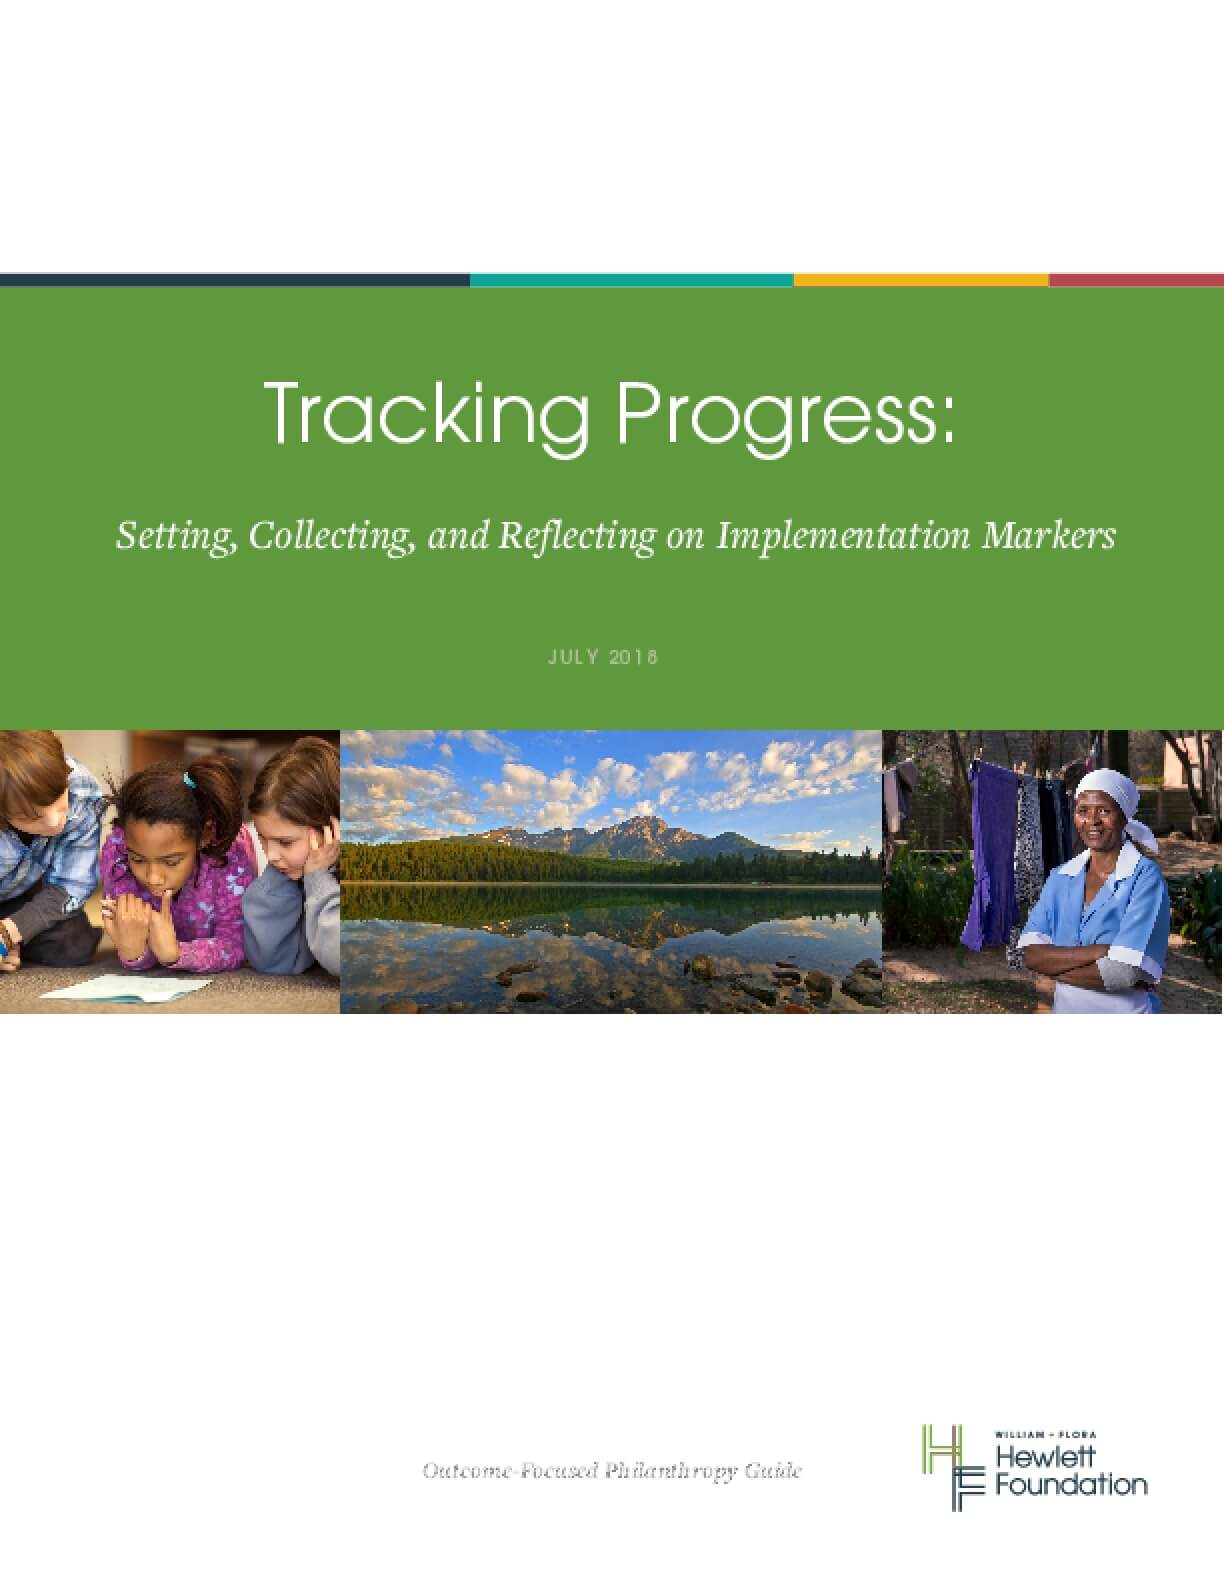 Tracking progress: Setting, collecting, and reflecting on implementation markers